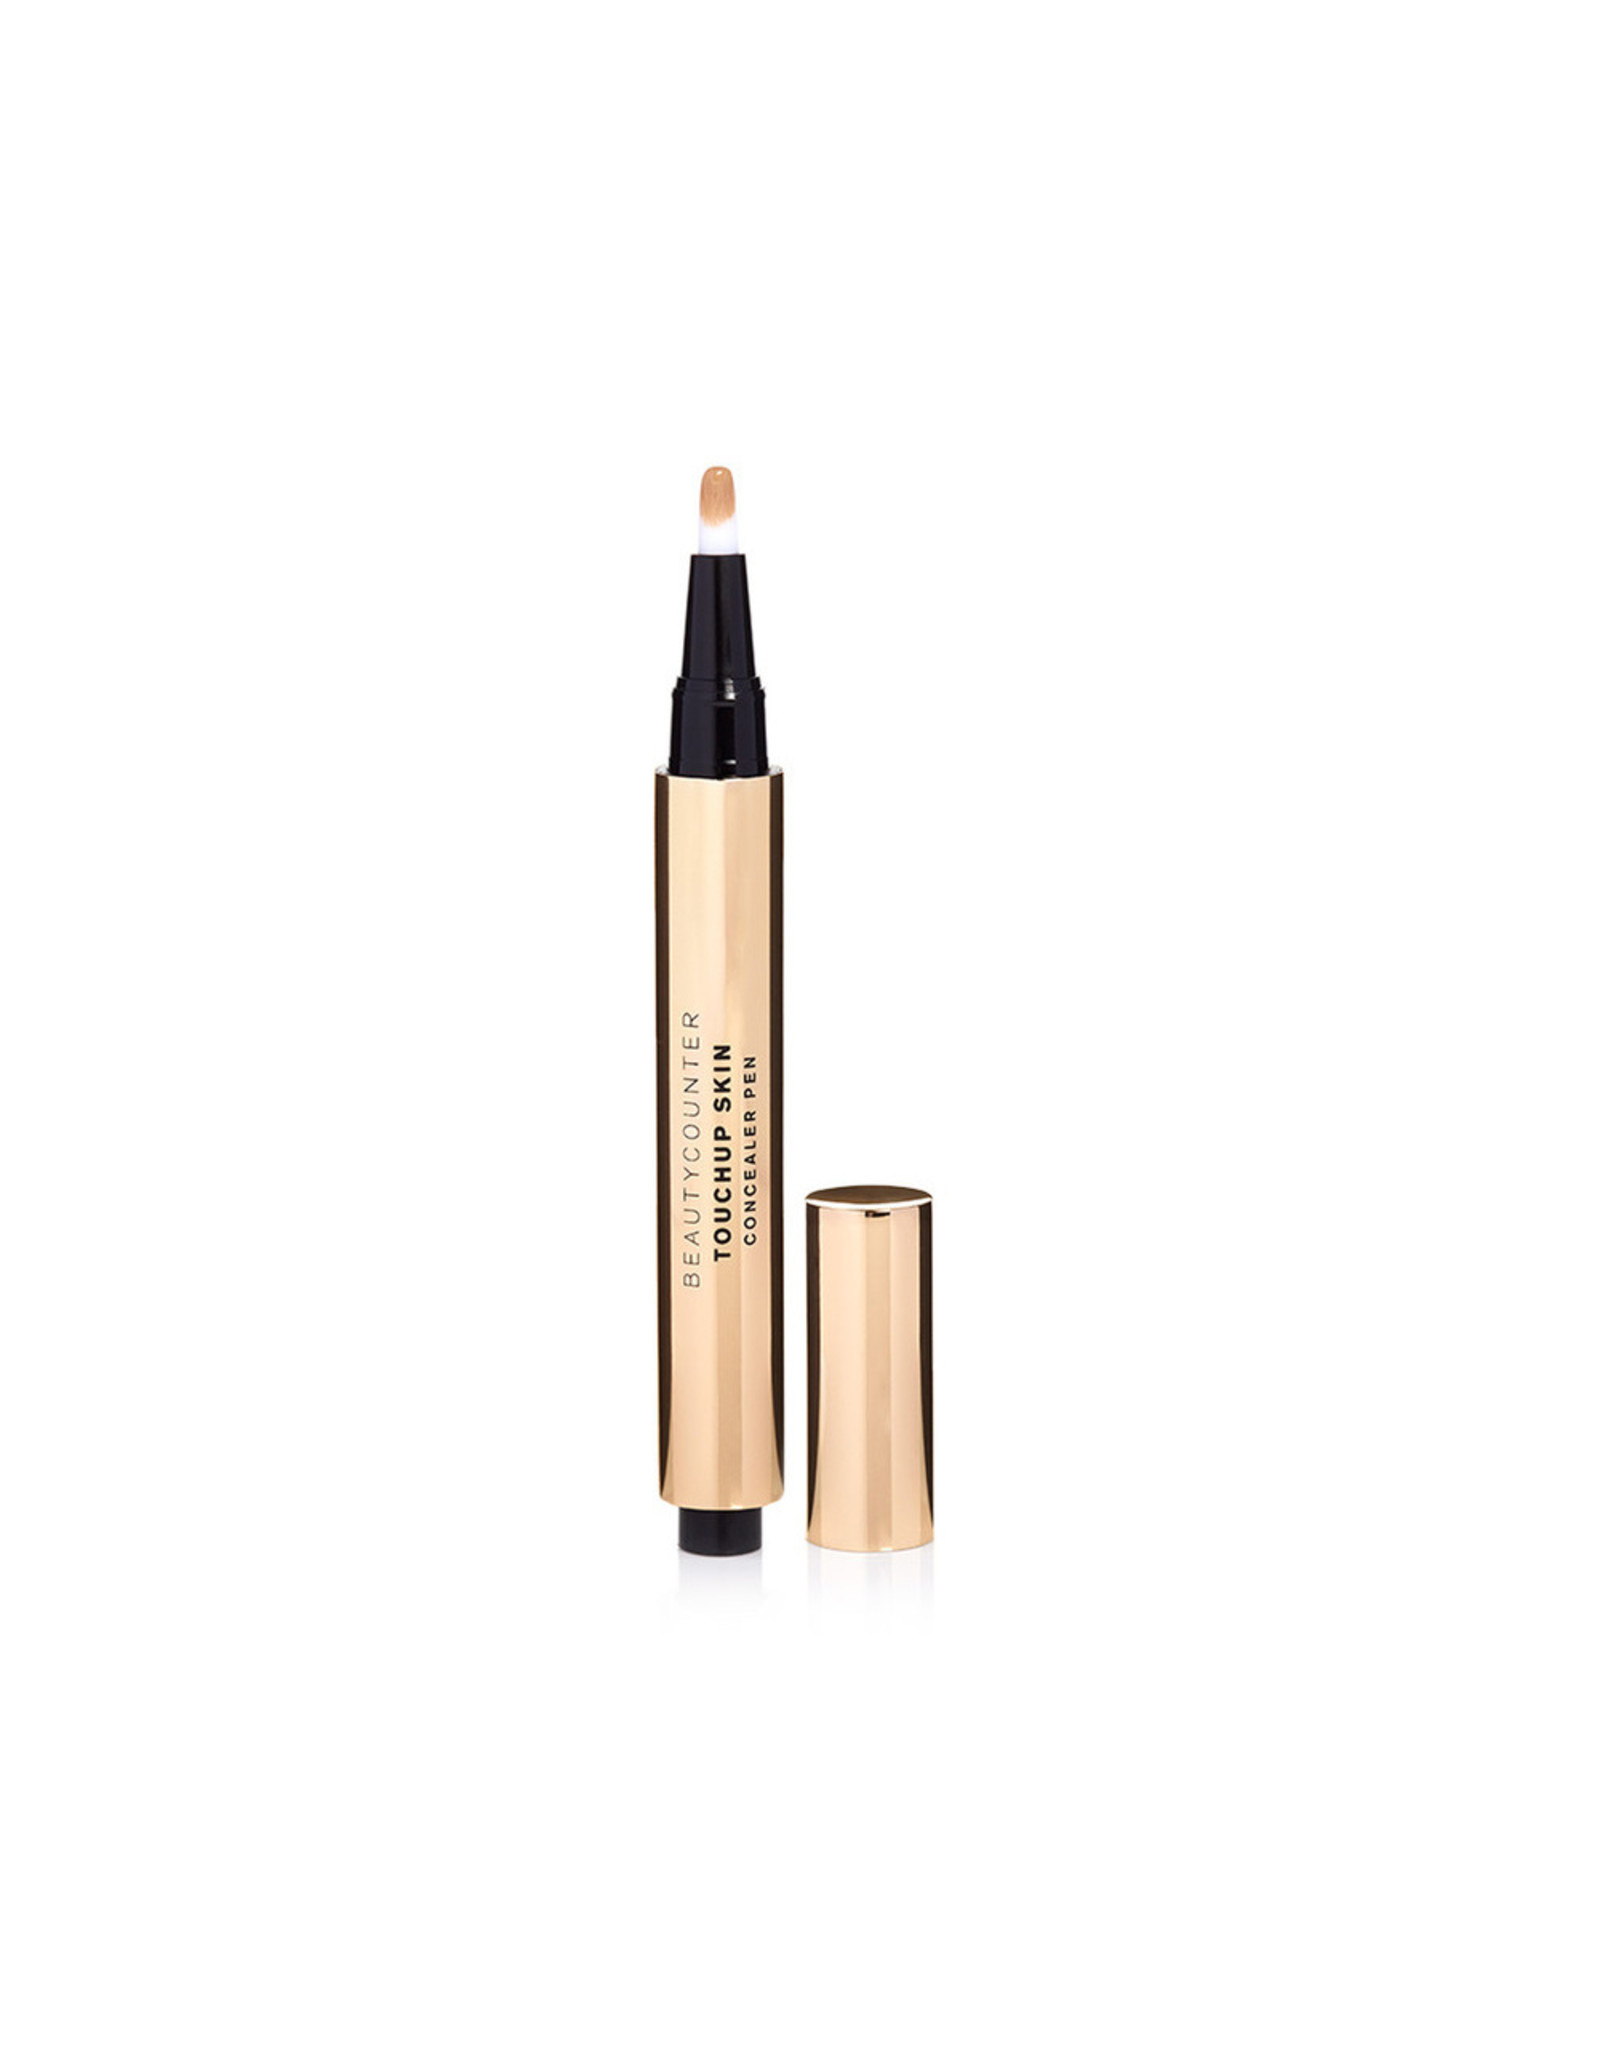 Beautycounter Beautycounter Touchup Skin Concealer Pen (Color: Light)